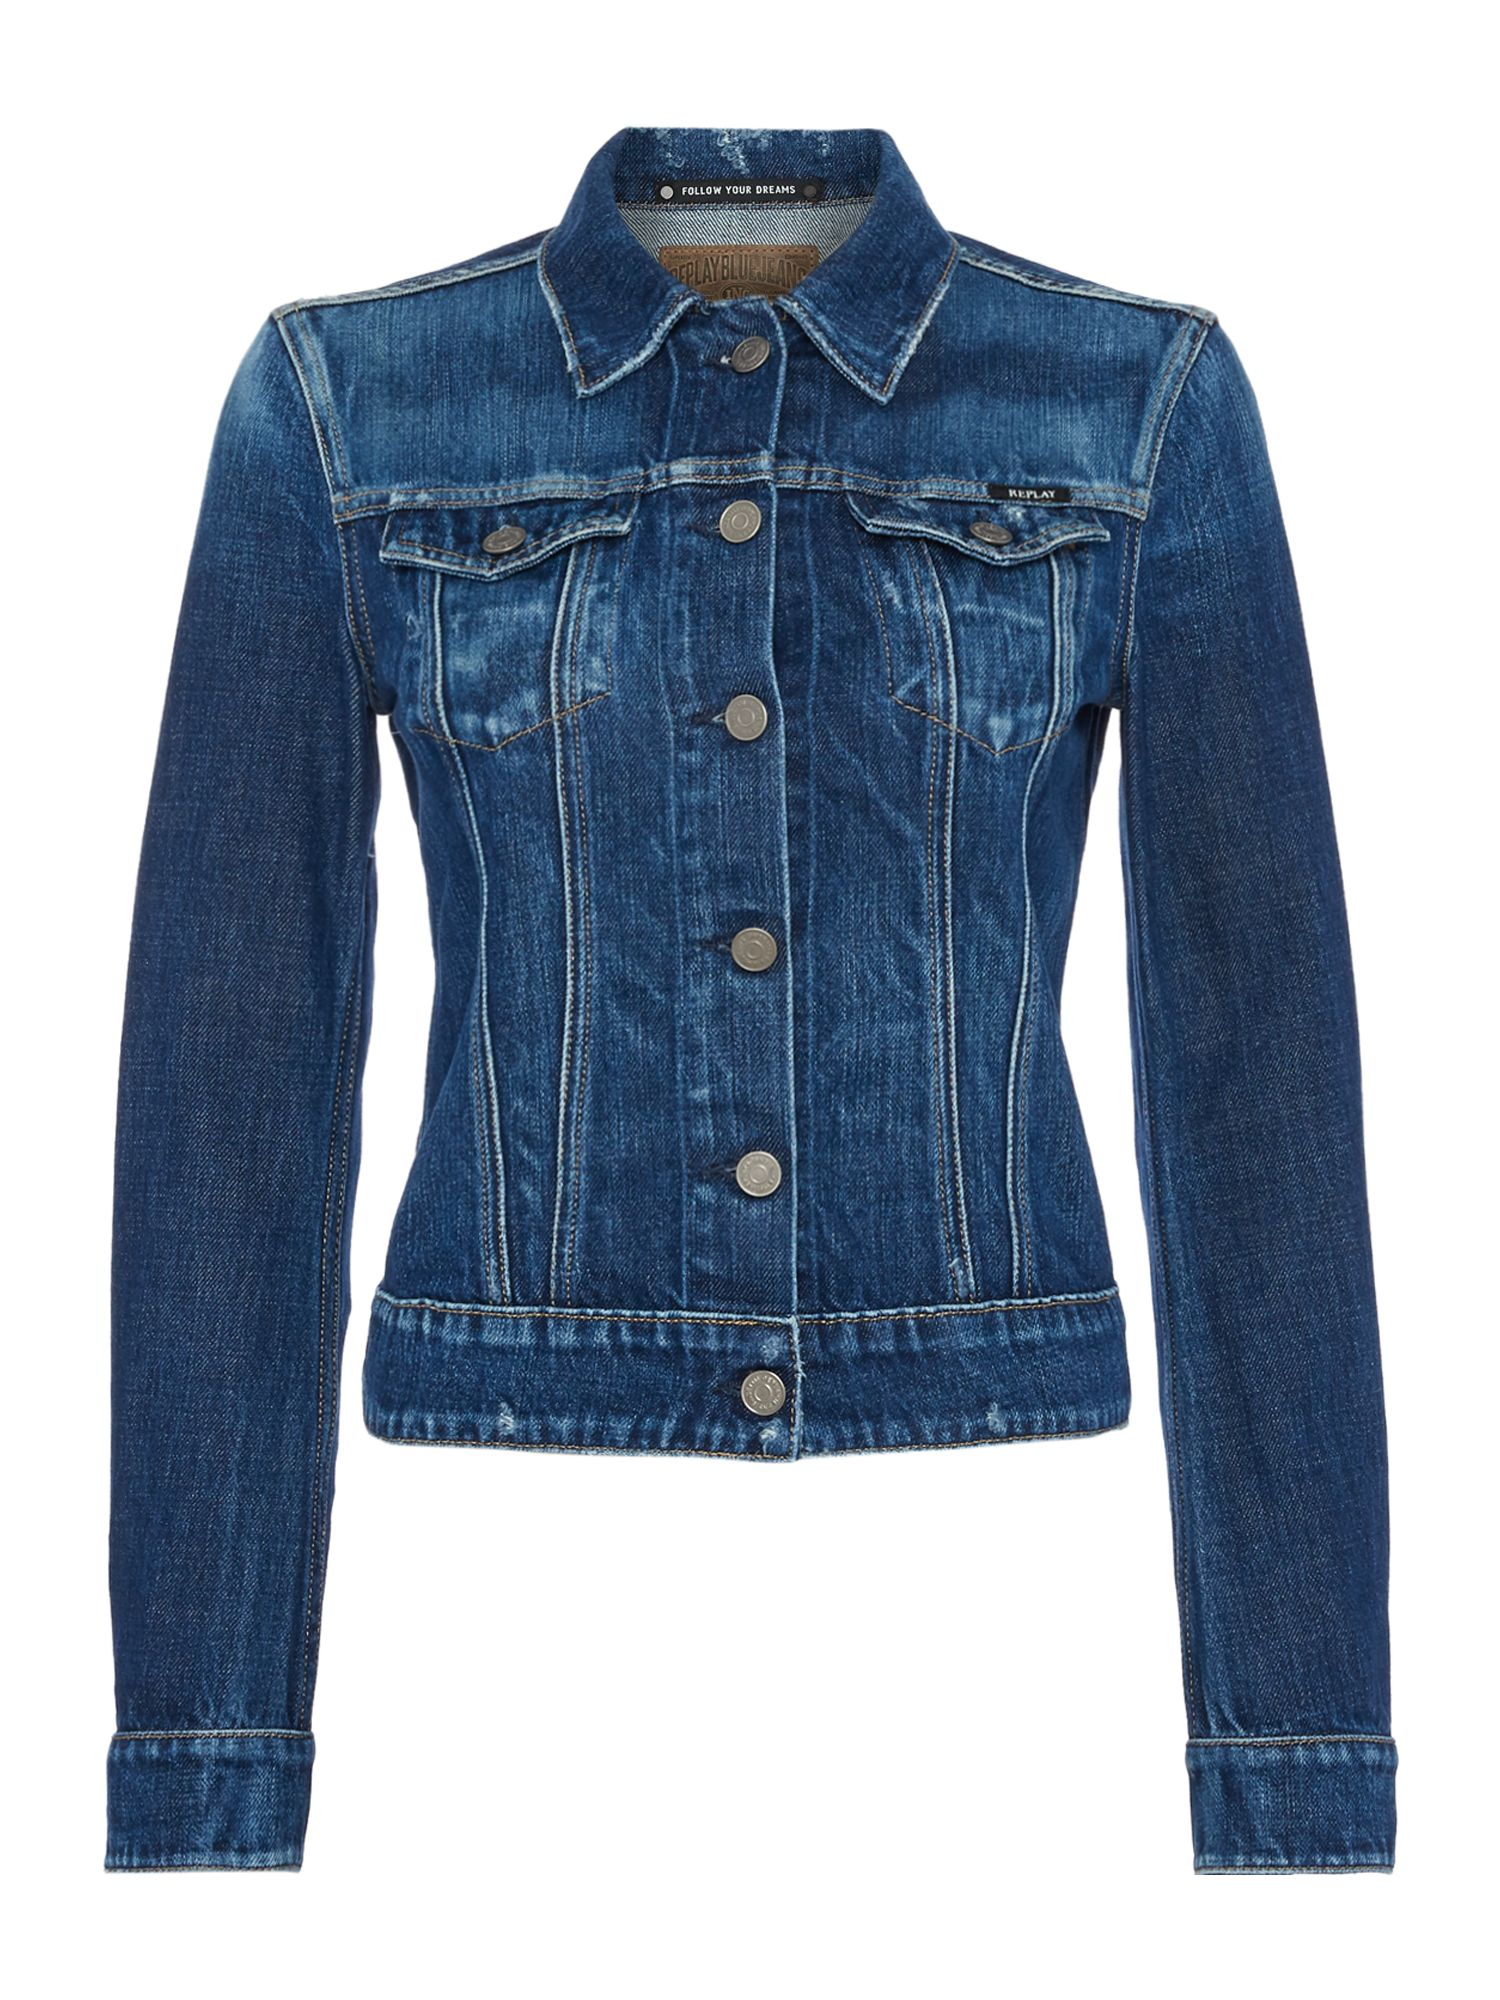 Replay Blue Replay Denim Jacket, Cobalt